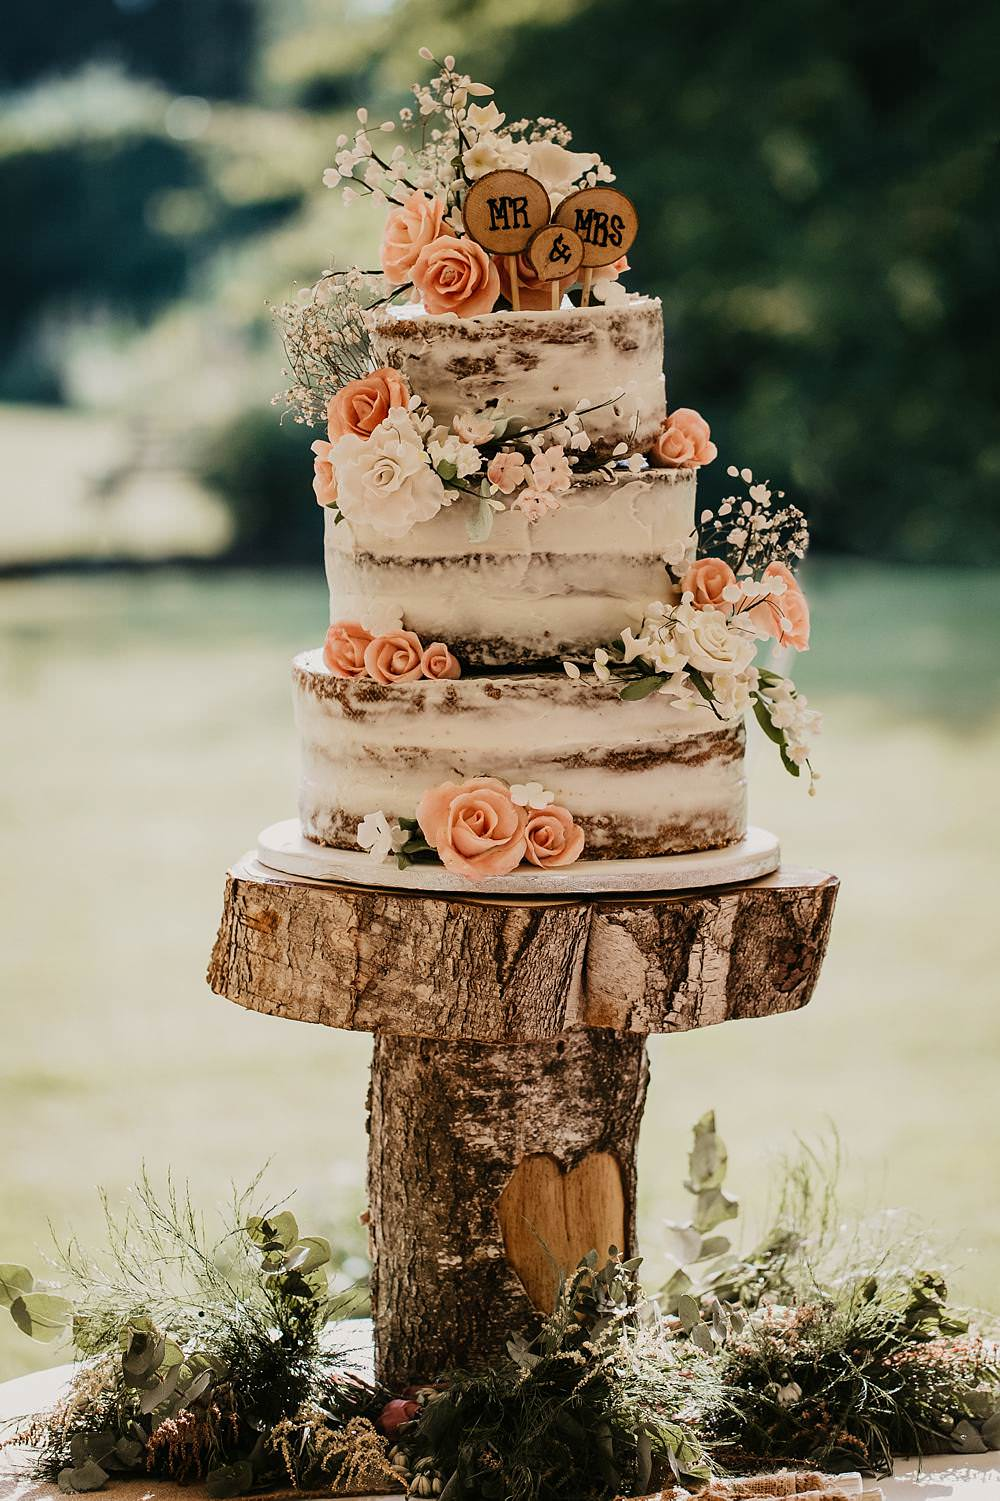 Semi Naked Cake Flowers Rustic Wooden Log Stand Eggington House Wedding October Willis Photography